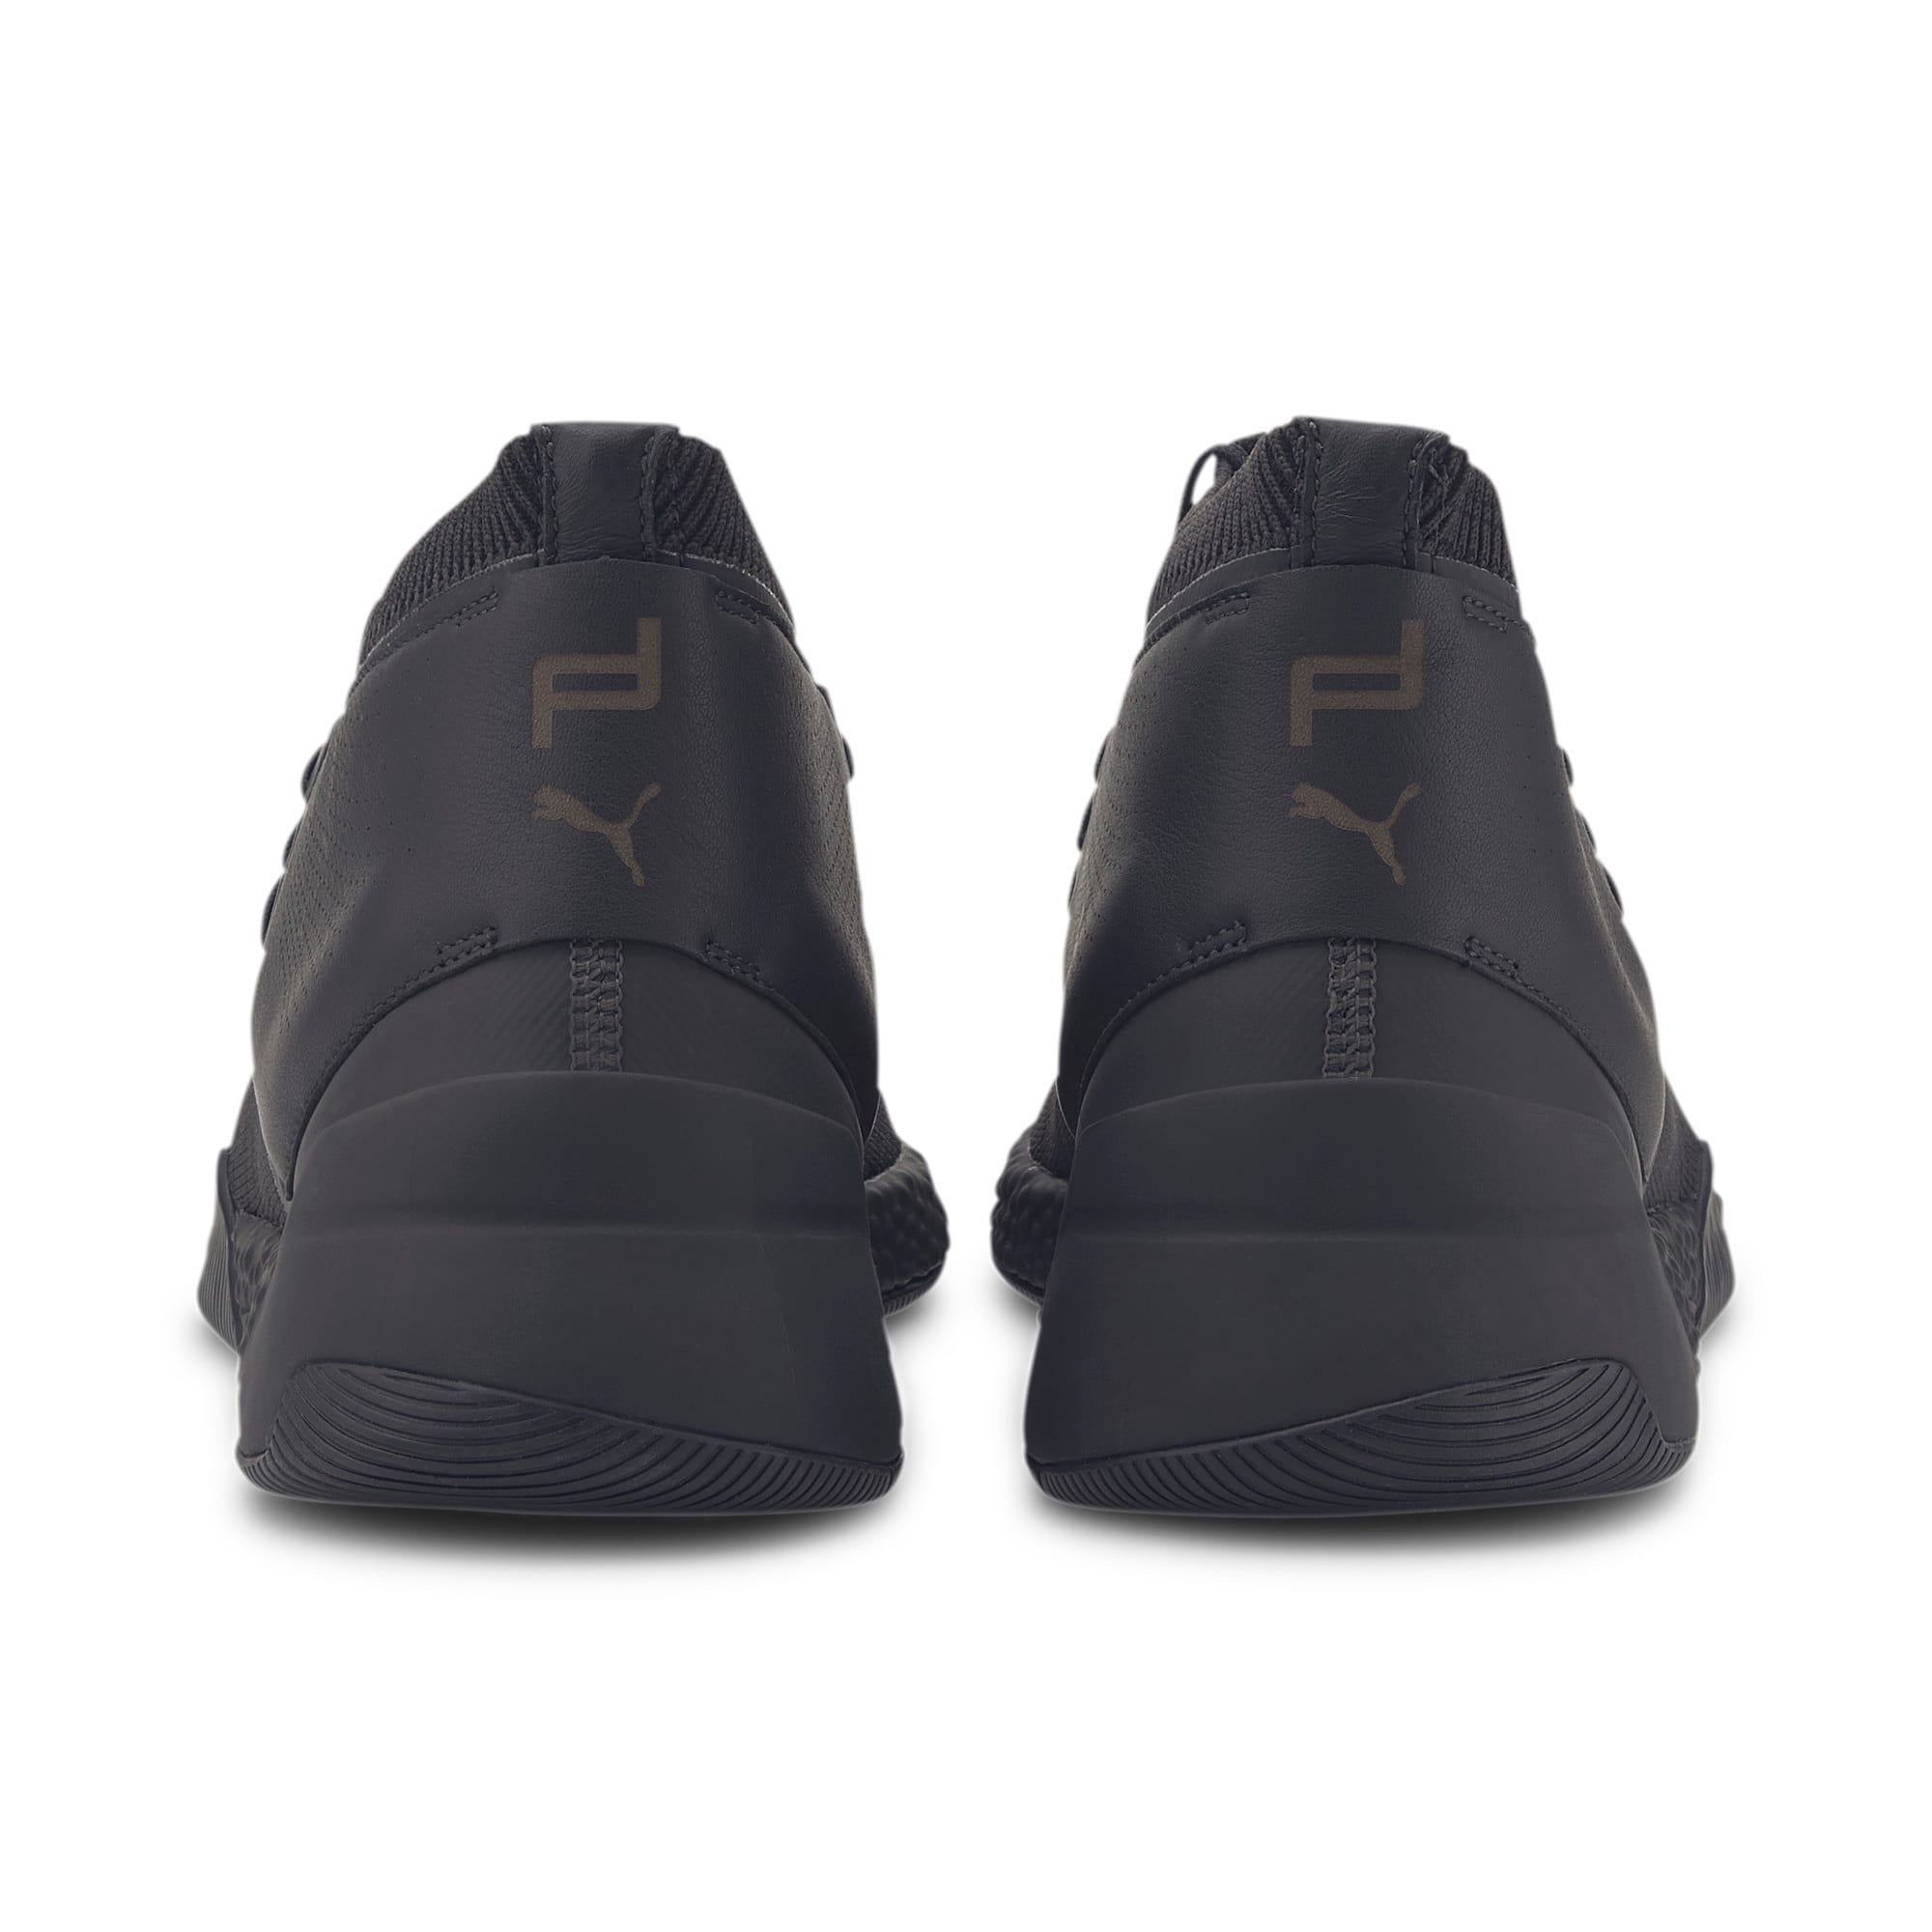 Thumbnail 4 of Porsche Design Hybrid evoKNIT Men's Trainers, Jet Black-Jet Black-JetBlack, medium